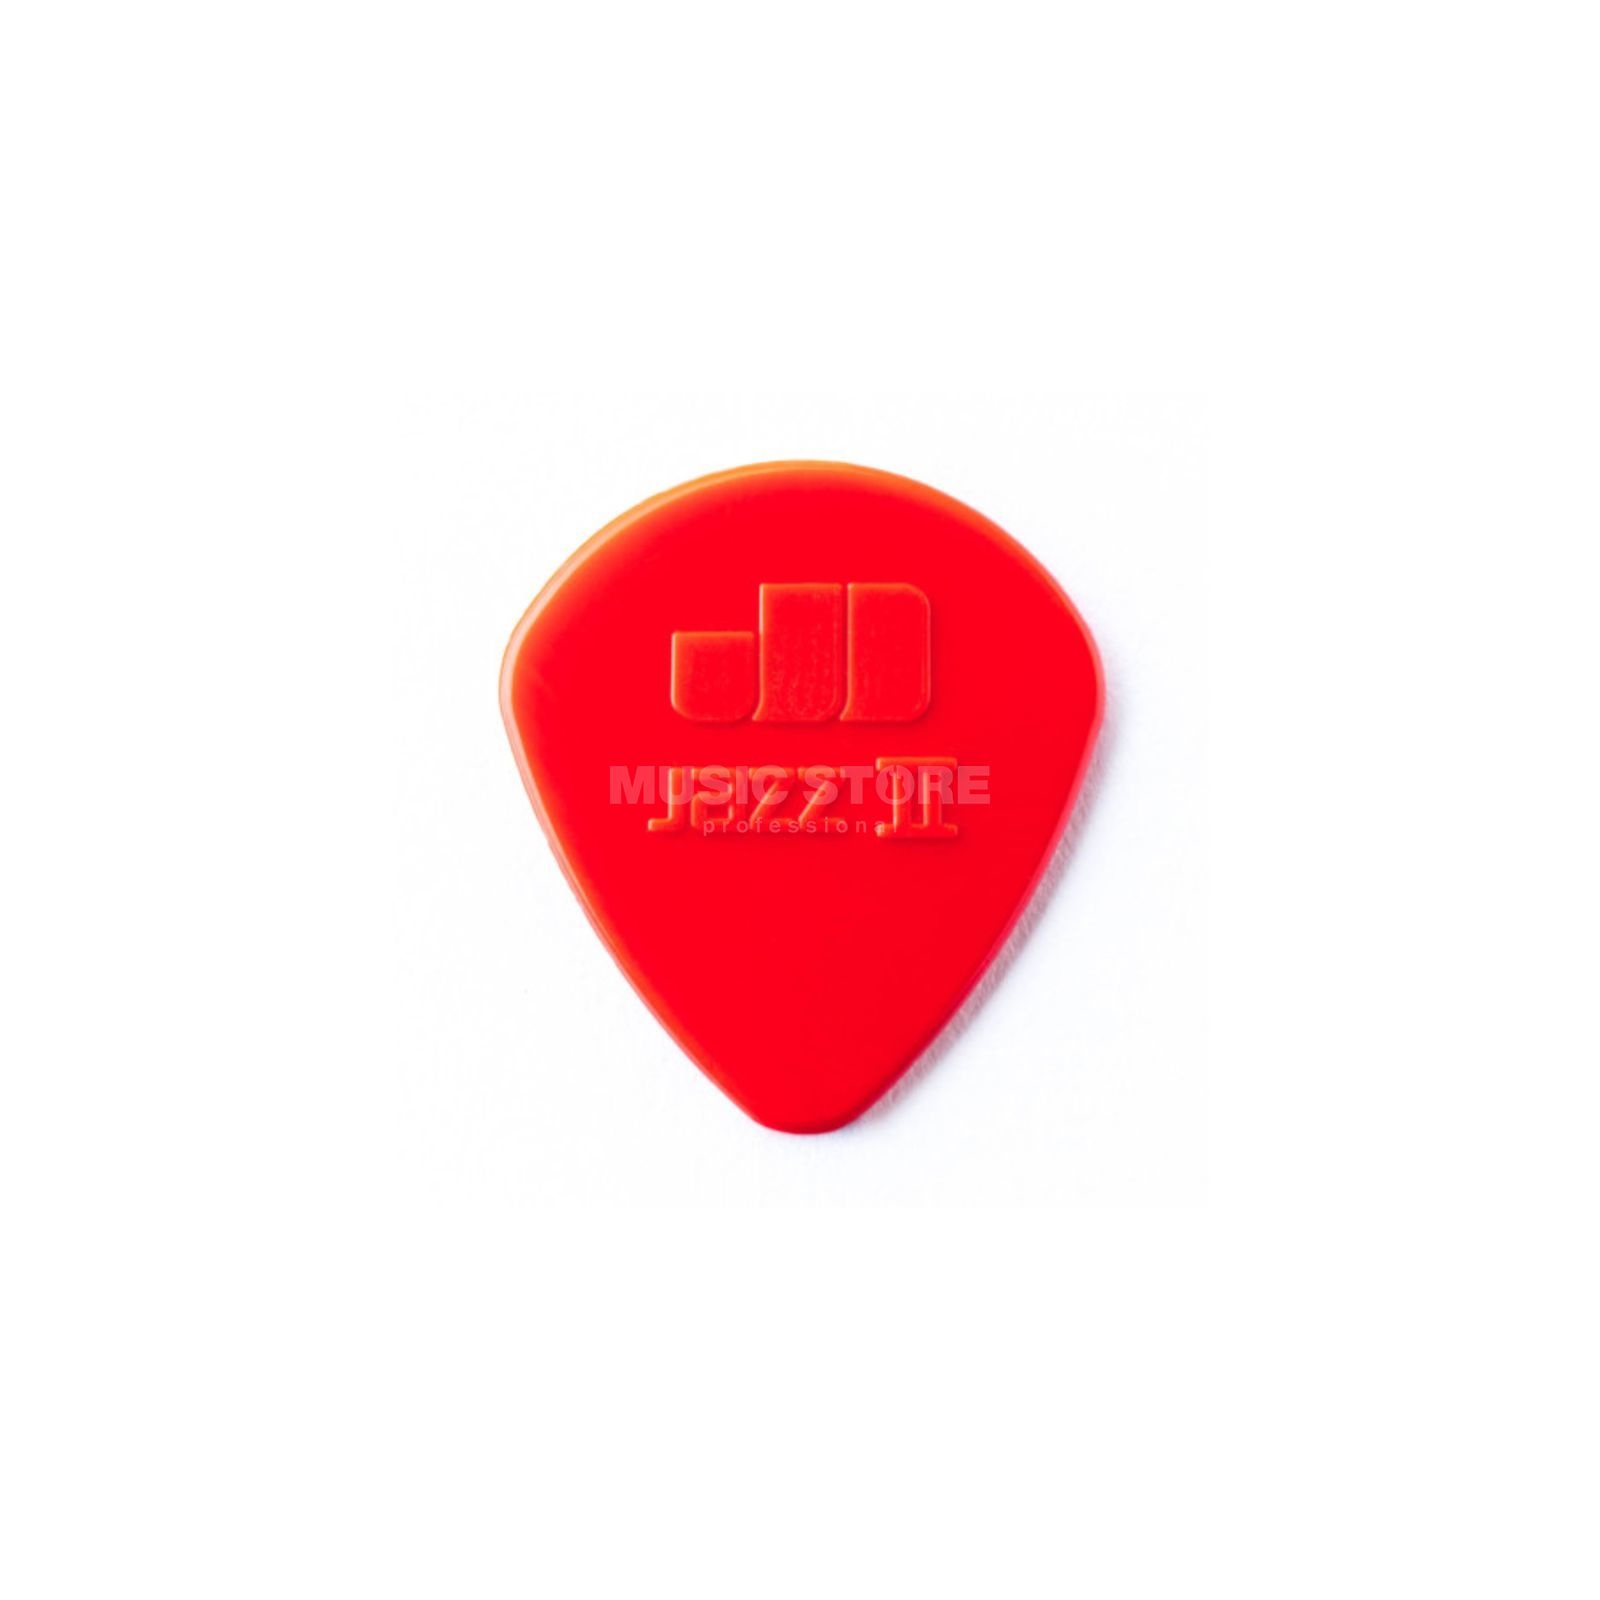 Dunlop Jazz II Plectrum Red 1.18mm Pack Of 6, Guitar Picks Produktbillede